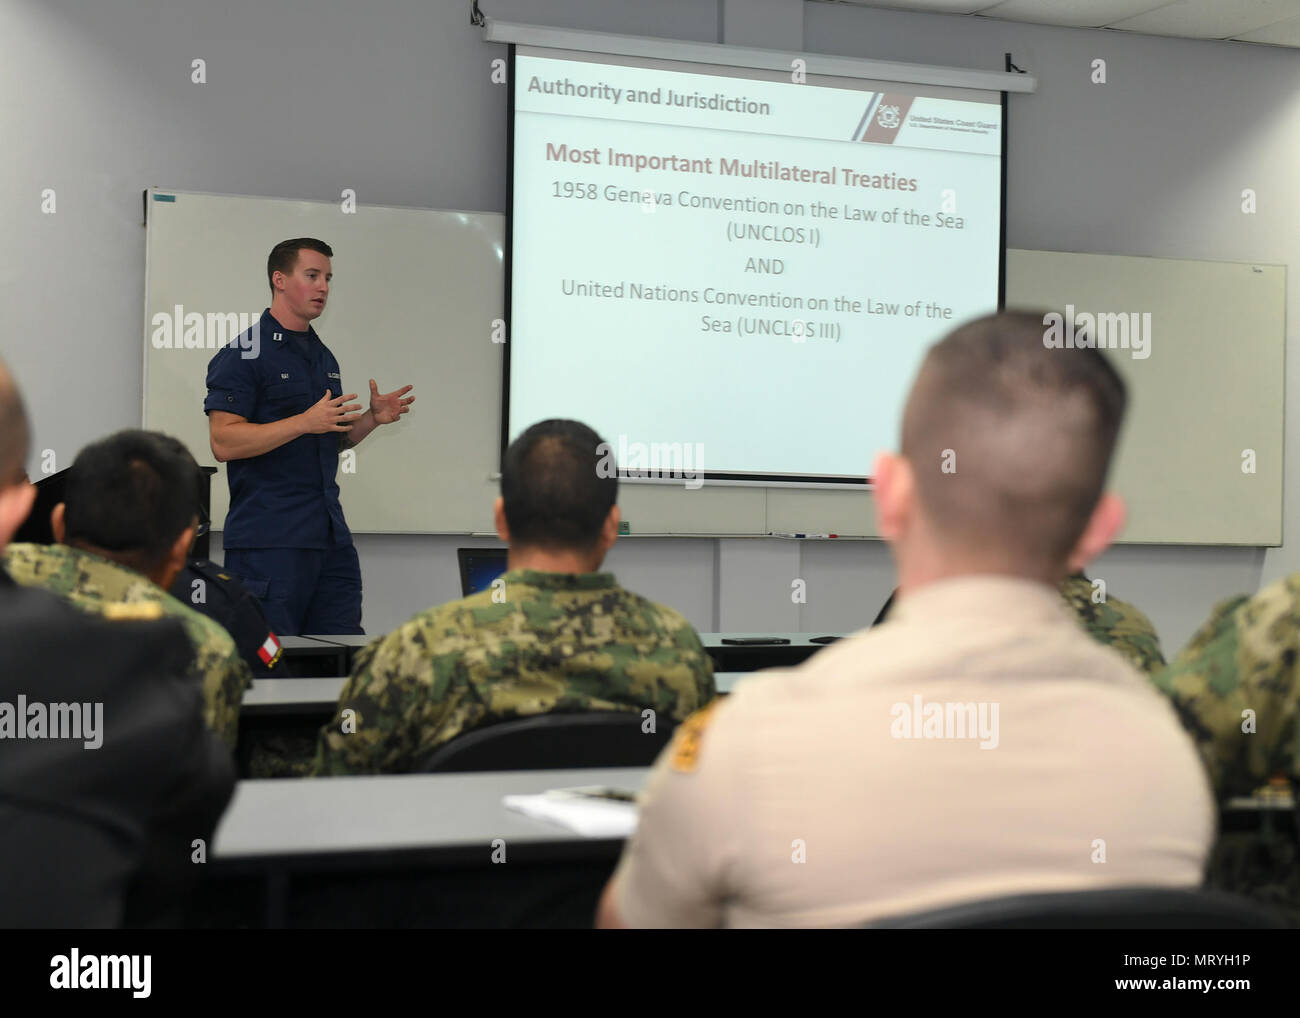 170716-N-PQ607-006  LIMA, Peru (July 16, 2917) - U.S. Coast Guard Lt. Andrew Ray conducts a maritime law enforcement symposium with UNITAS partner nation participants from Mexico, Peru, Honduras and Chile. UNITAS is an annual exercise that focuses on strengthening our existing regional partnerships and encourages establishing new relationships through the exchange of maritime mission-focused knowledge and expertise throughout the exercise. (U.S. Navy photo by Mass Communication Specialist 2nd Class Michael Hendricks/Released) Stock Photo